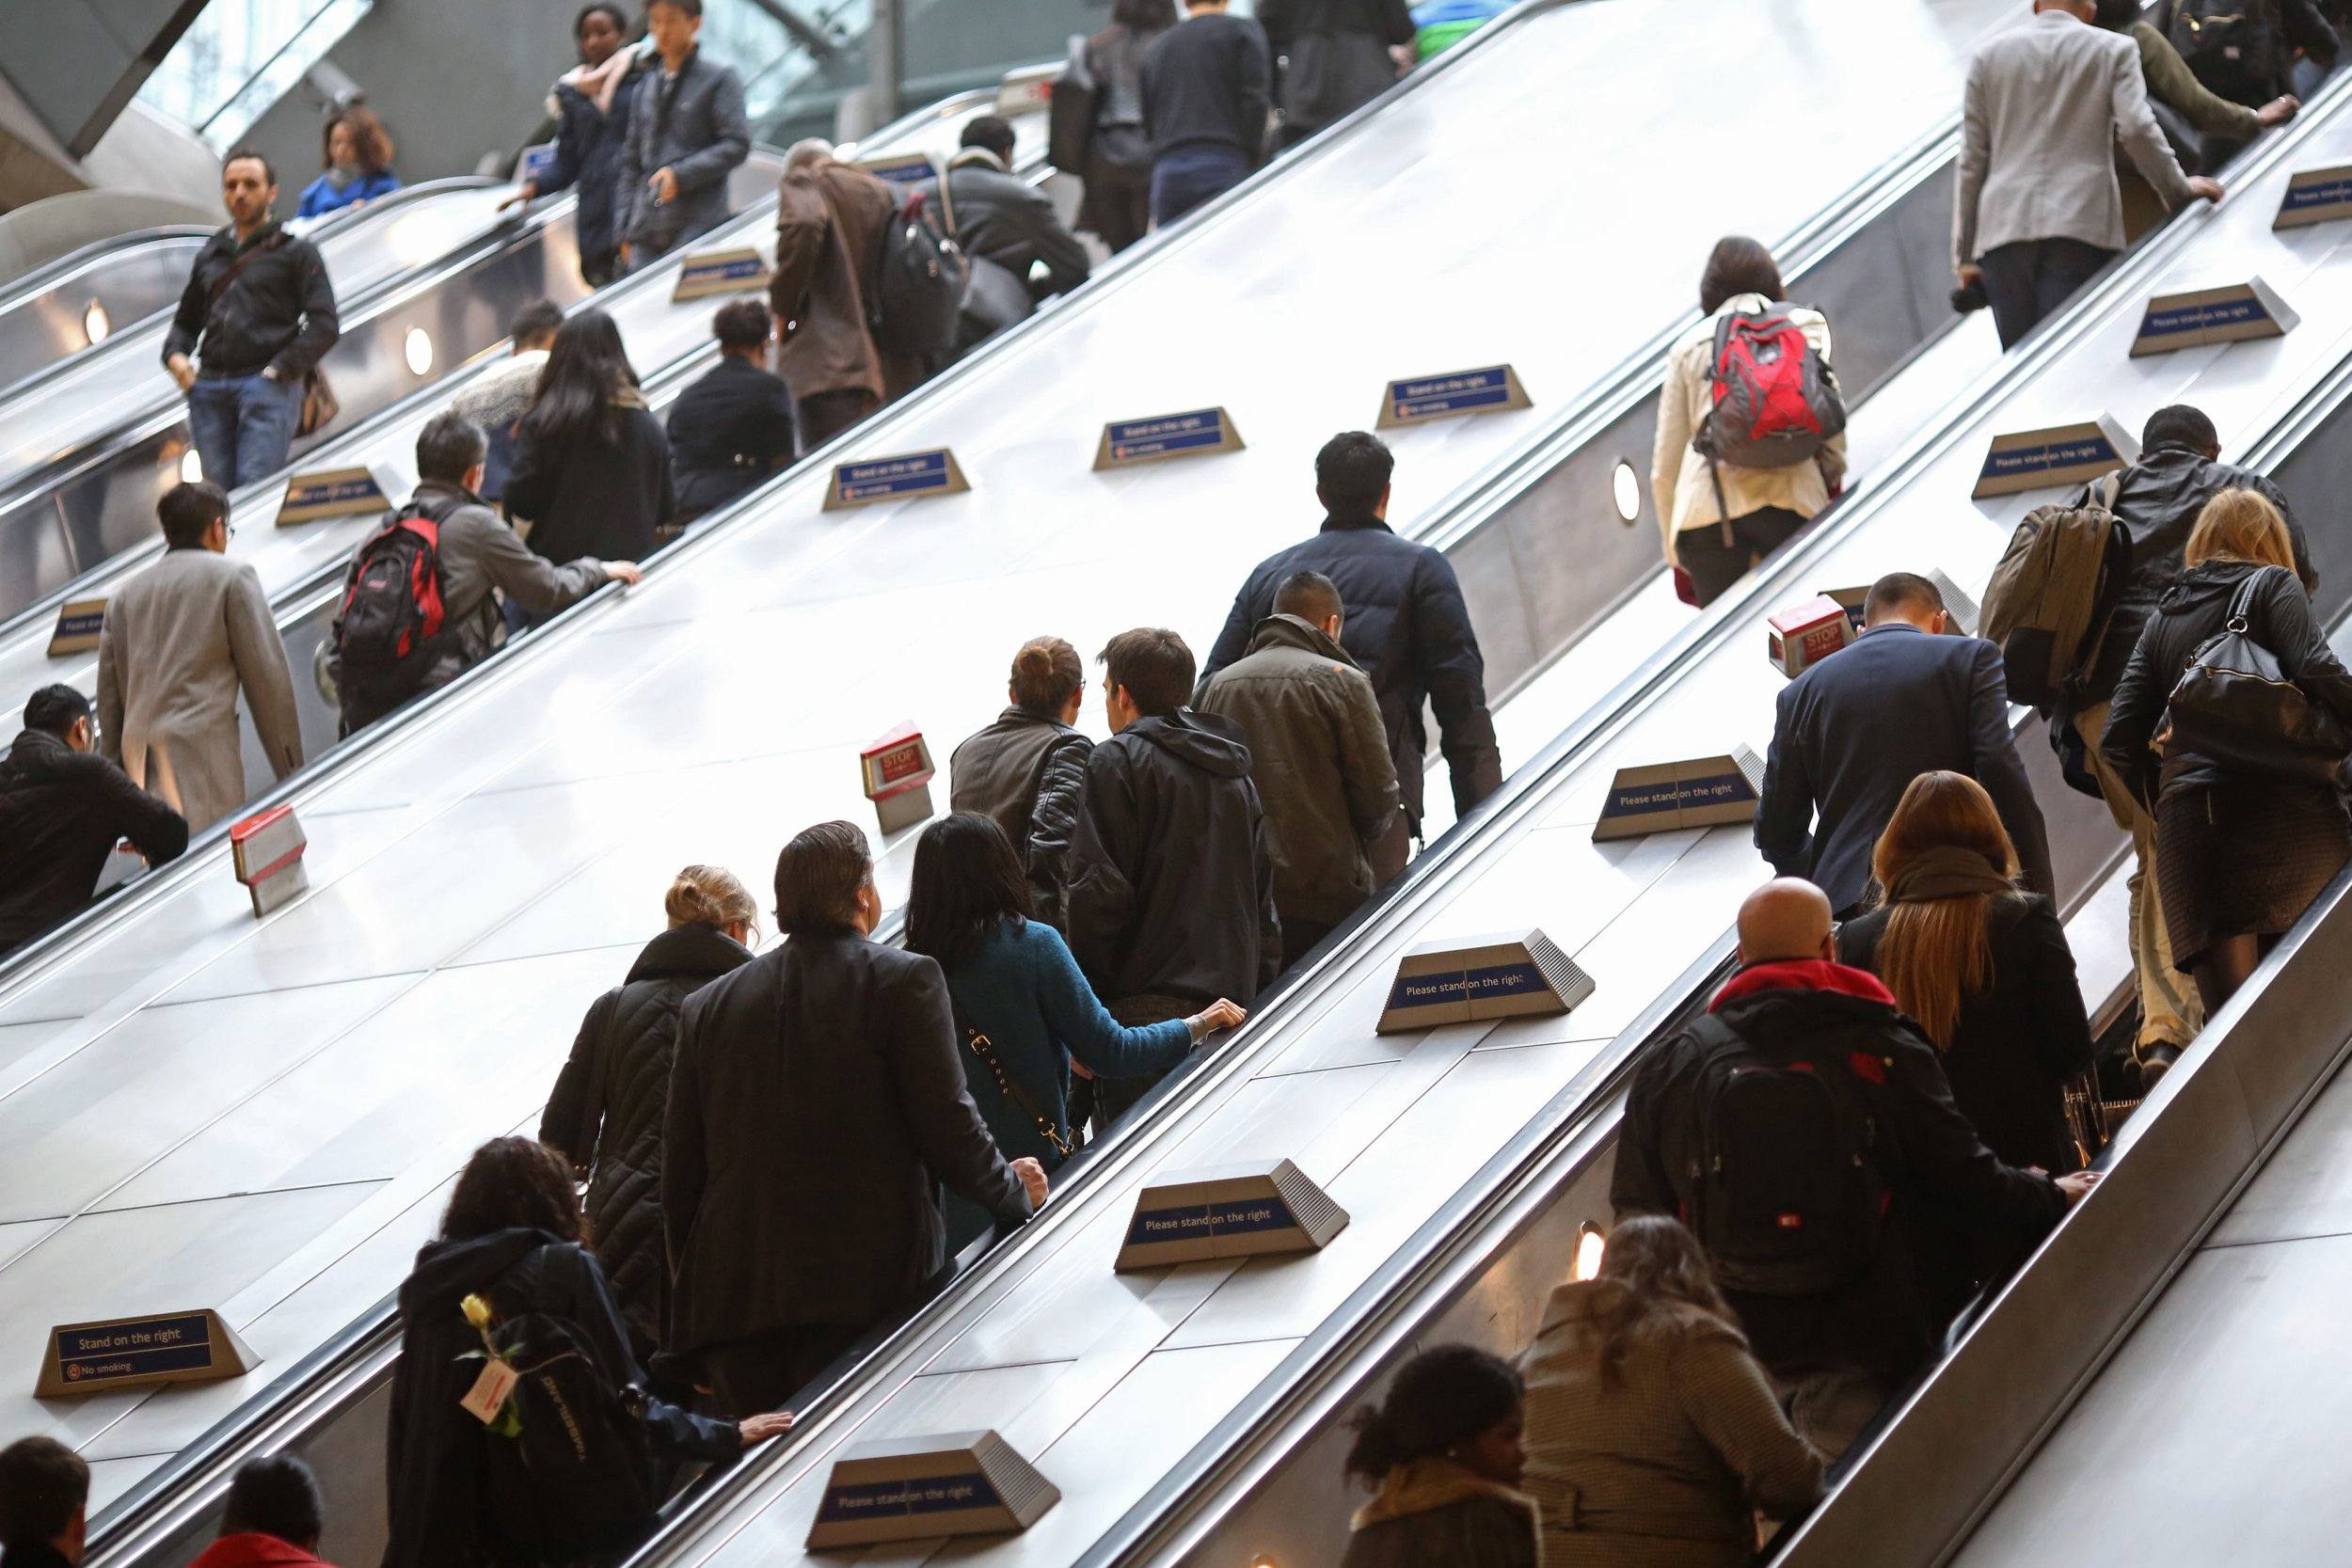 TfL scraps standing only escalators (Getty) Commuters travel on escalators at a London Underground station in the Canary Wharf business, financial and shopping district in London, U.K., on Friday, Oct. 30, 2015. In its monthly consumer confidence index, GfK said a measure of Britons' outlook for the economy over the next 12 months dropped to minus 4 in October, the lowest reading this year. Photographer: Chris Ratcliffe/Bloomberg via Getty Images